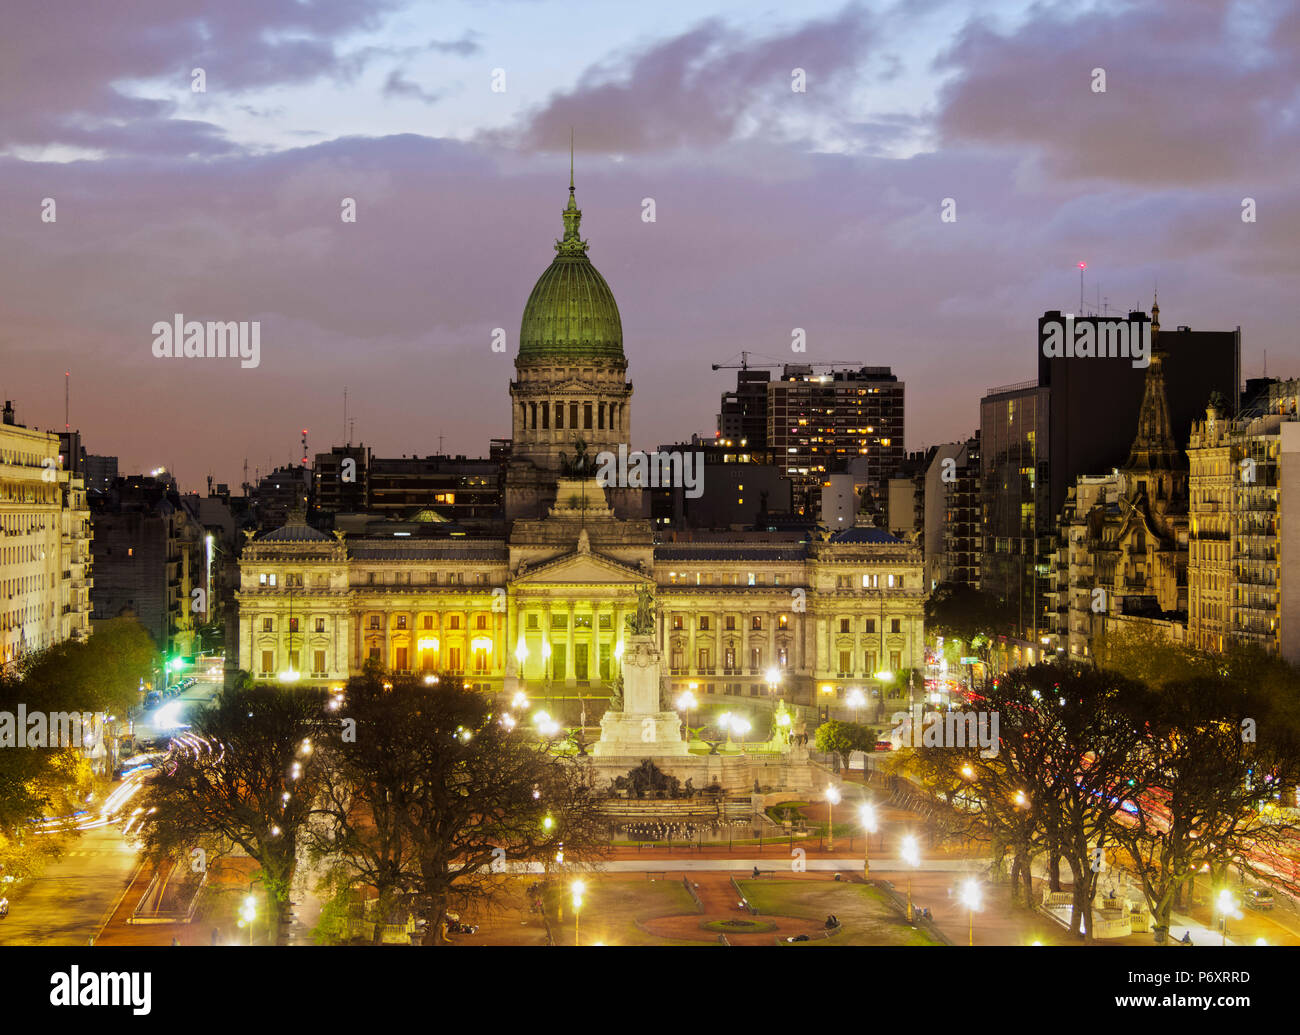 Argentina, Buenos Aires Province, City of Buenos Aires, Plaza del Congreso, Elevated view of the  Palace of the Argentine National Congress. - Stock Image